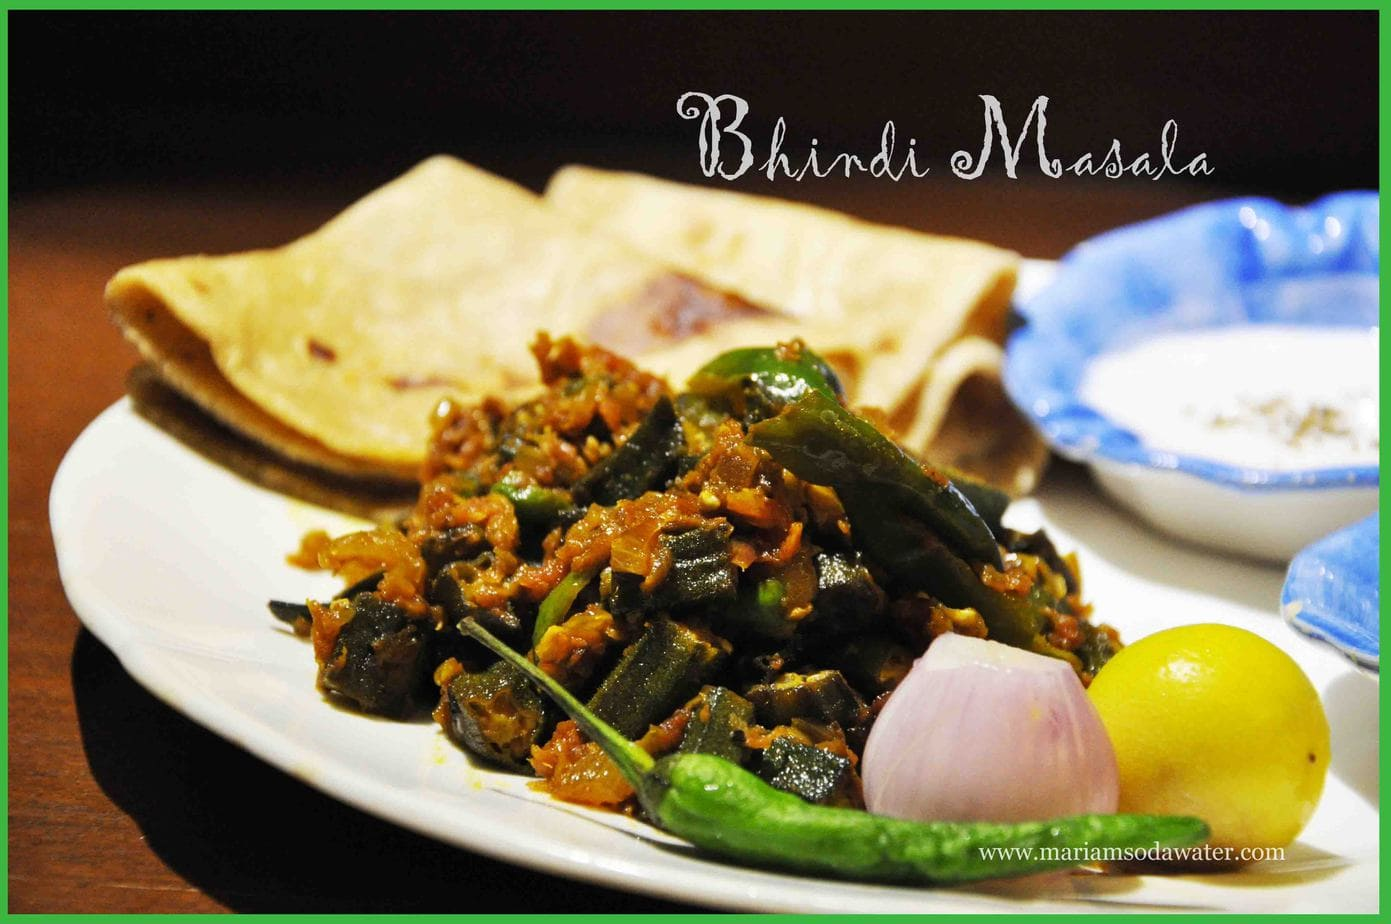 Bhindi served in plate with chapati and chutney served on the side.